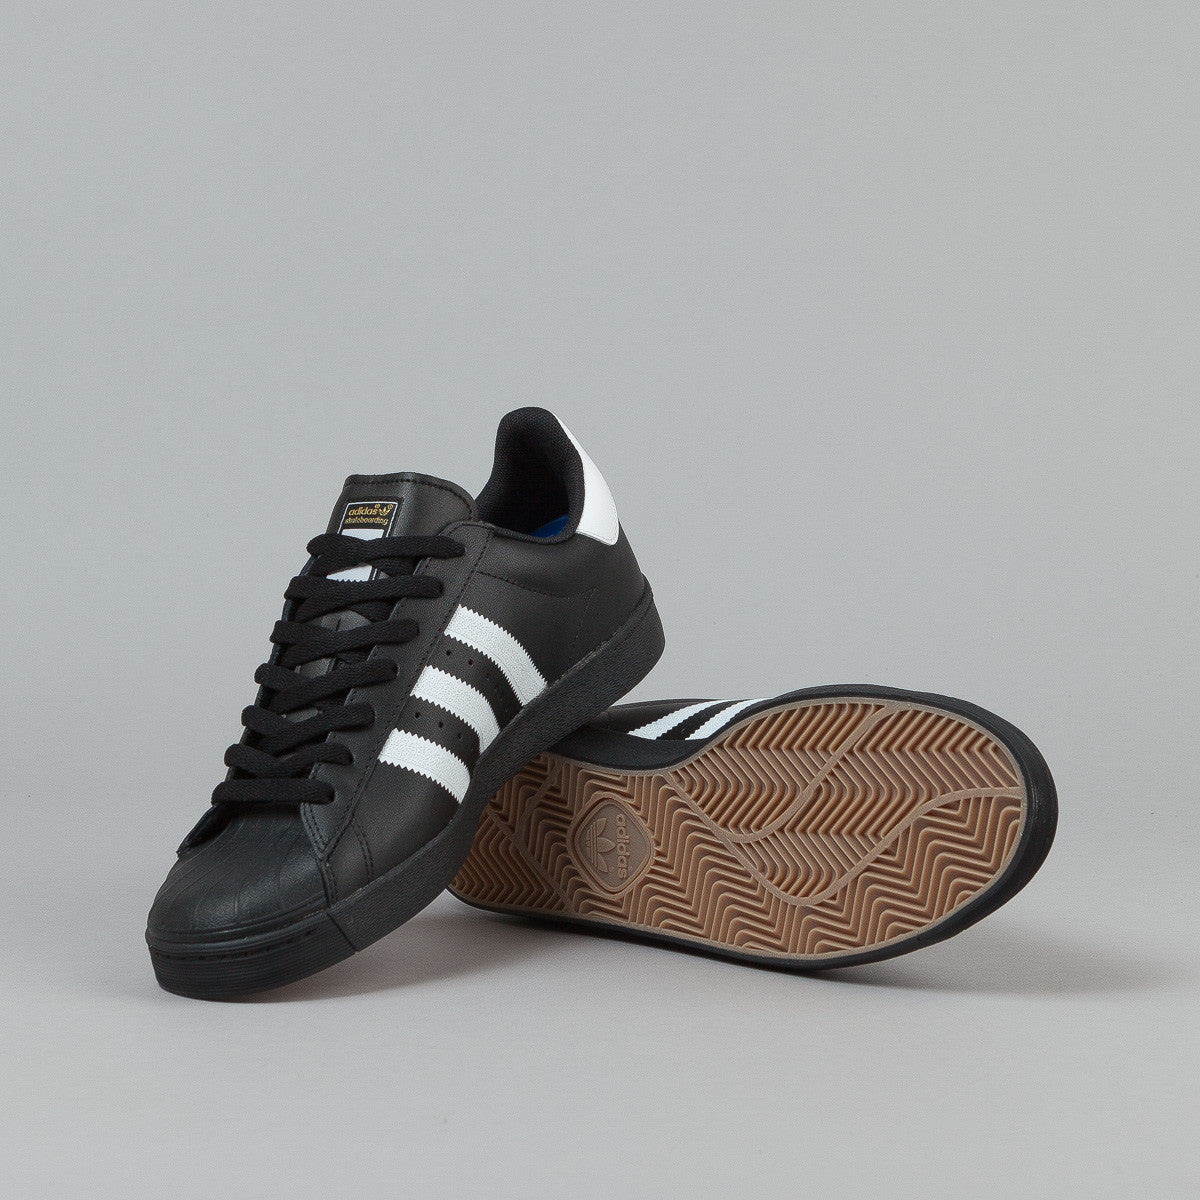 Cheap Adidas Originals Superstar Foundation Black/White B27140